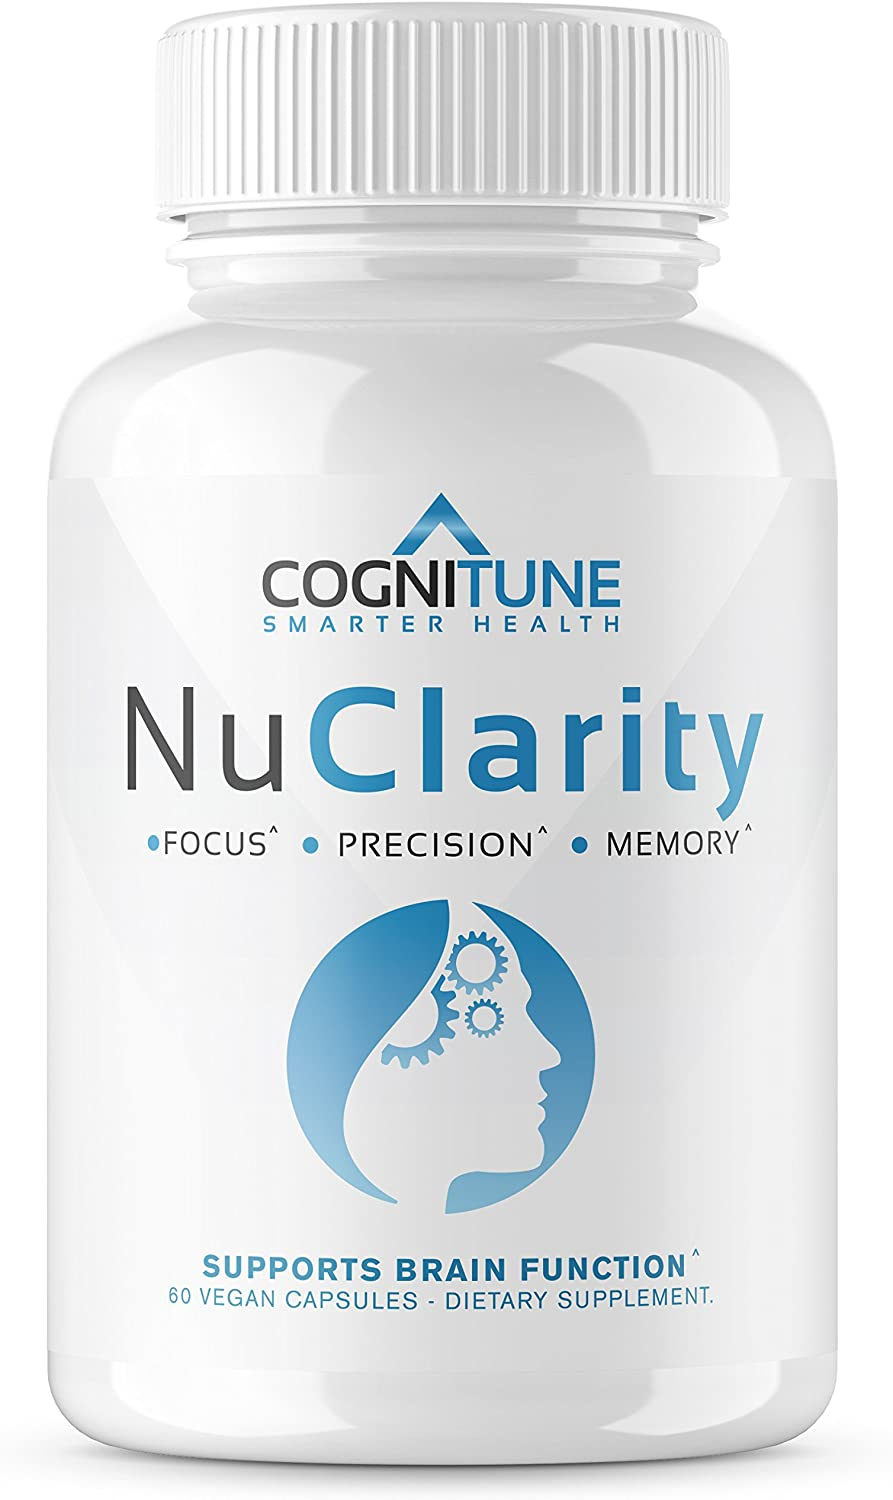 NuClarity – Premium Natural Nootropic Brain Supplement – 1 Focus, Energy, Memory Booster – Mental Health, Clarity Cognitive Function Support – Ginkgo Biloba, Phosphatidylserine, Rhodiola Rosea